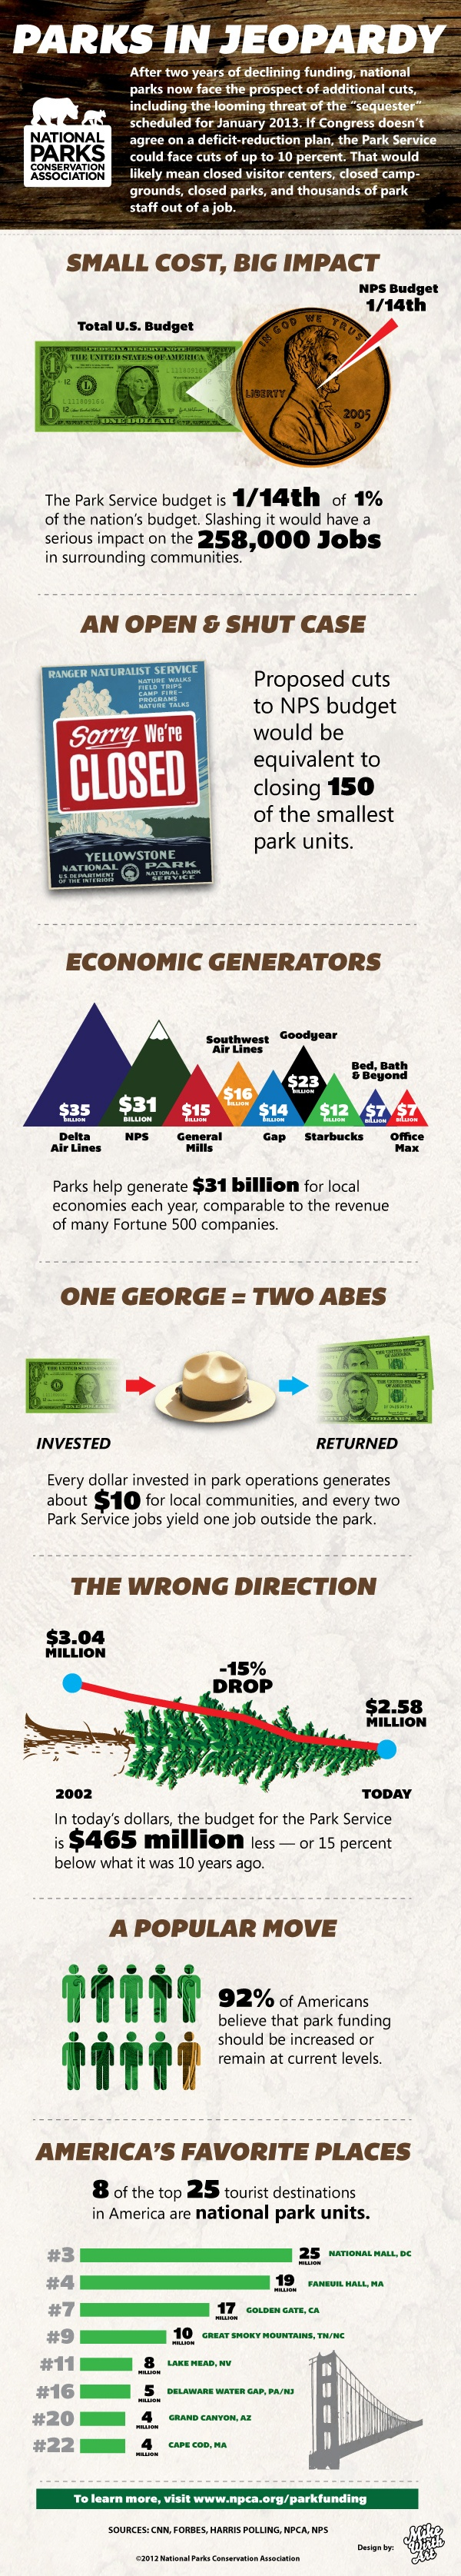 Parks in Jeopardy - NPCA Infographic